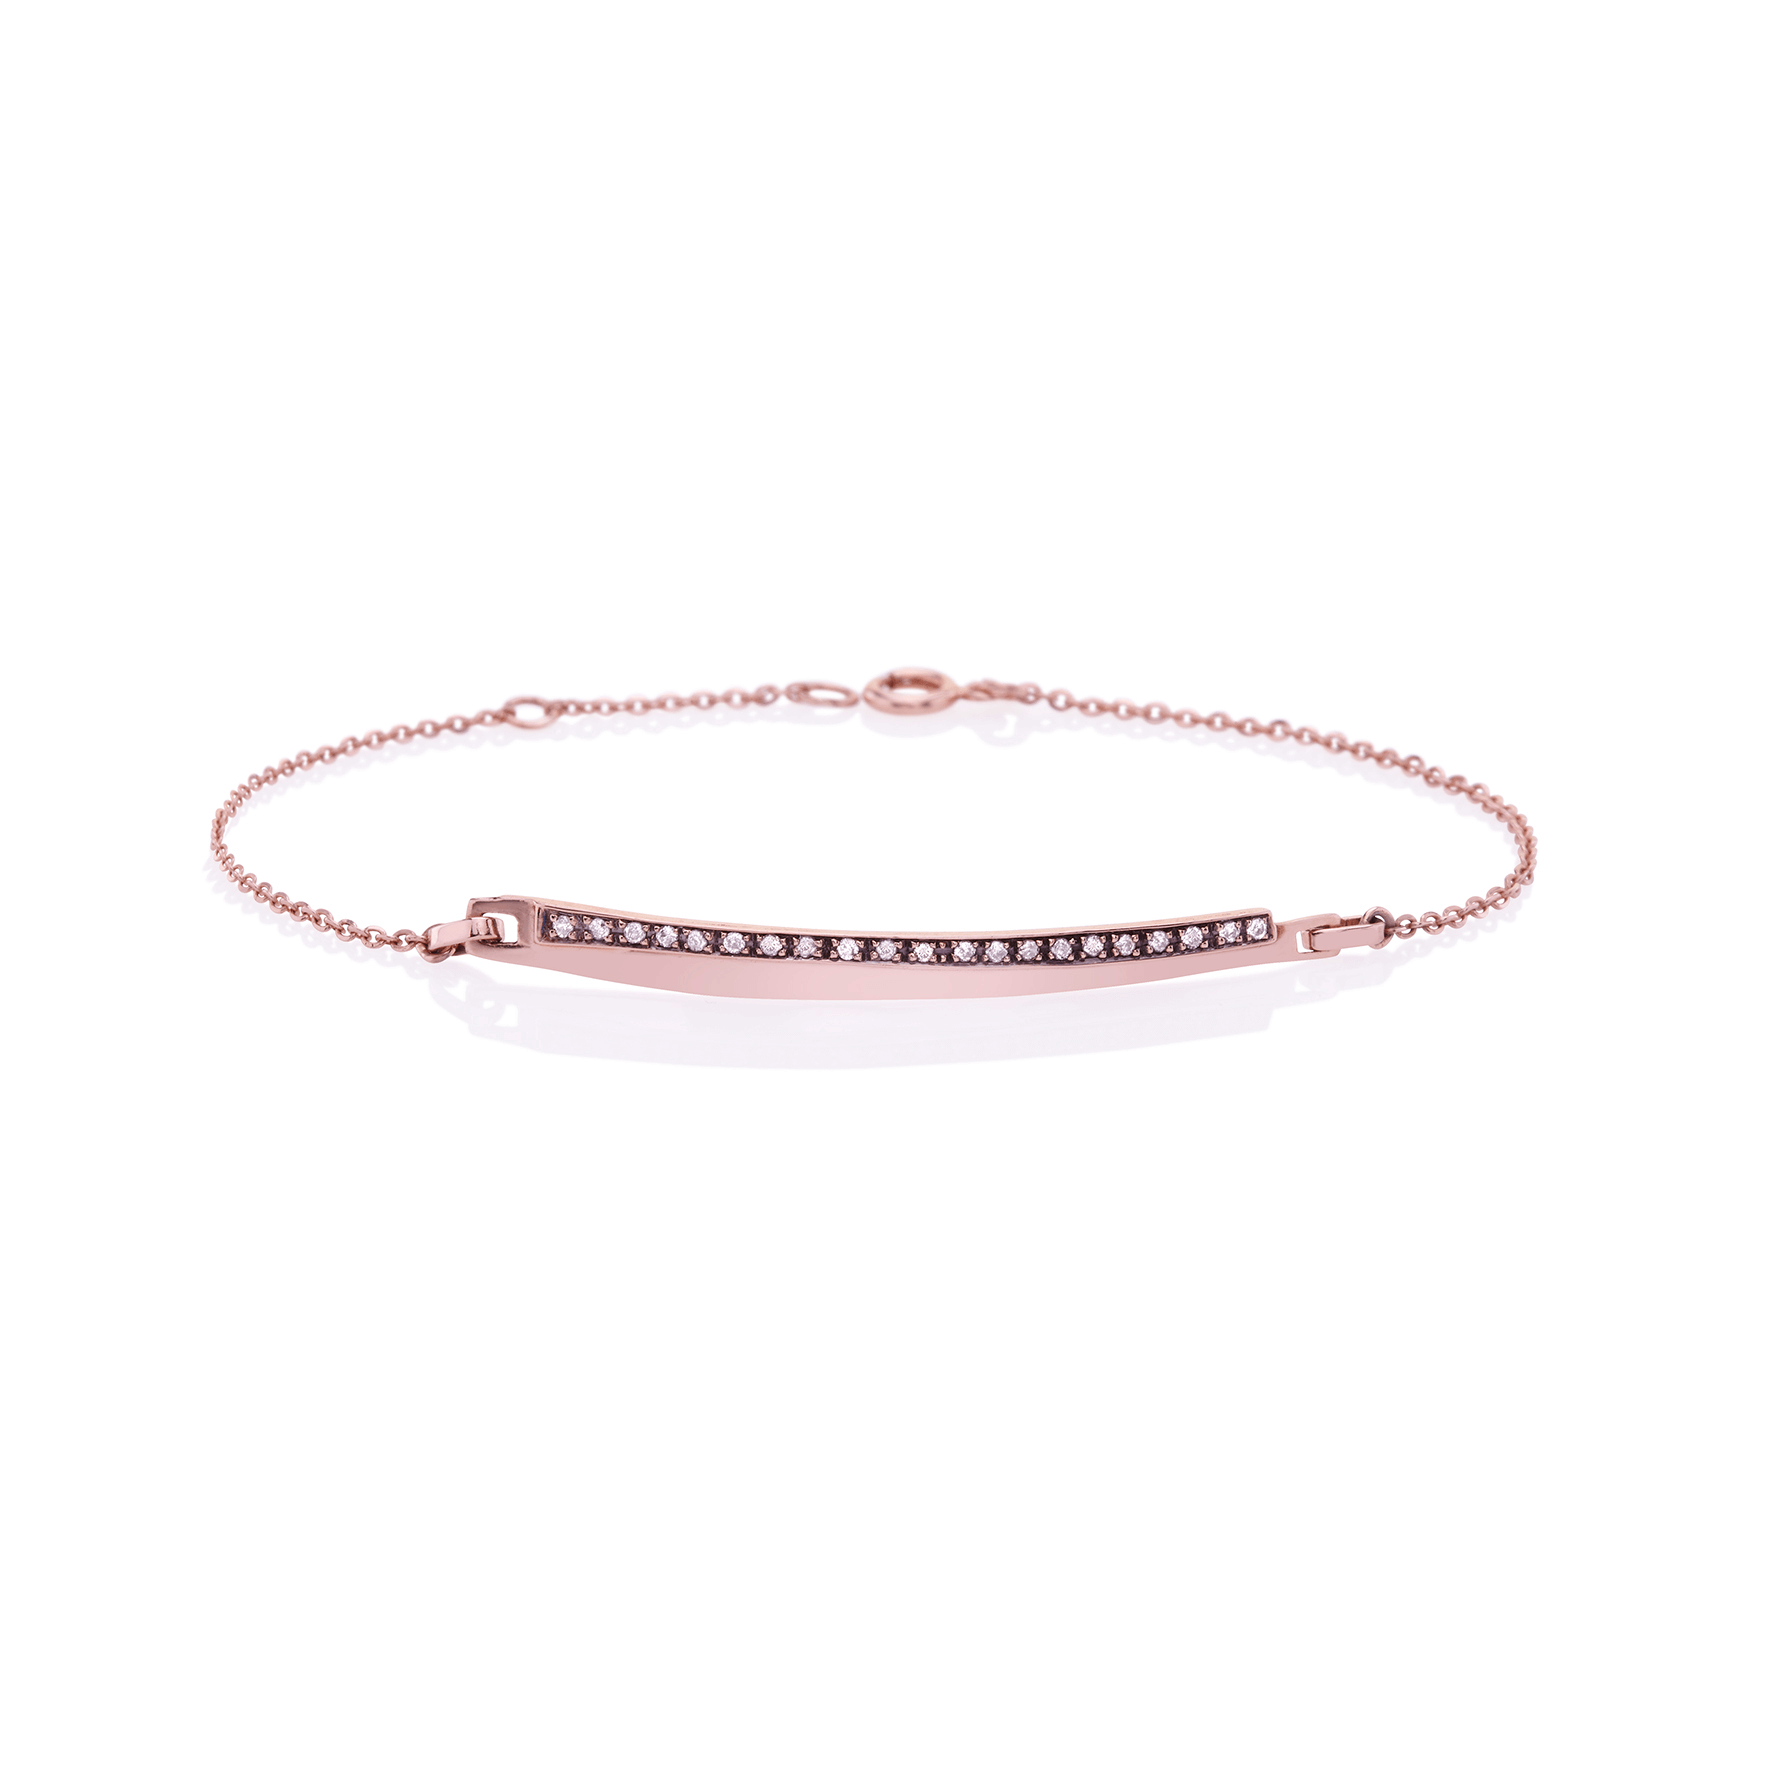 CEB001 - Diamond Bar Bracelet